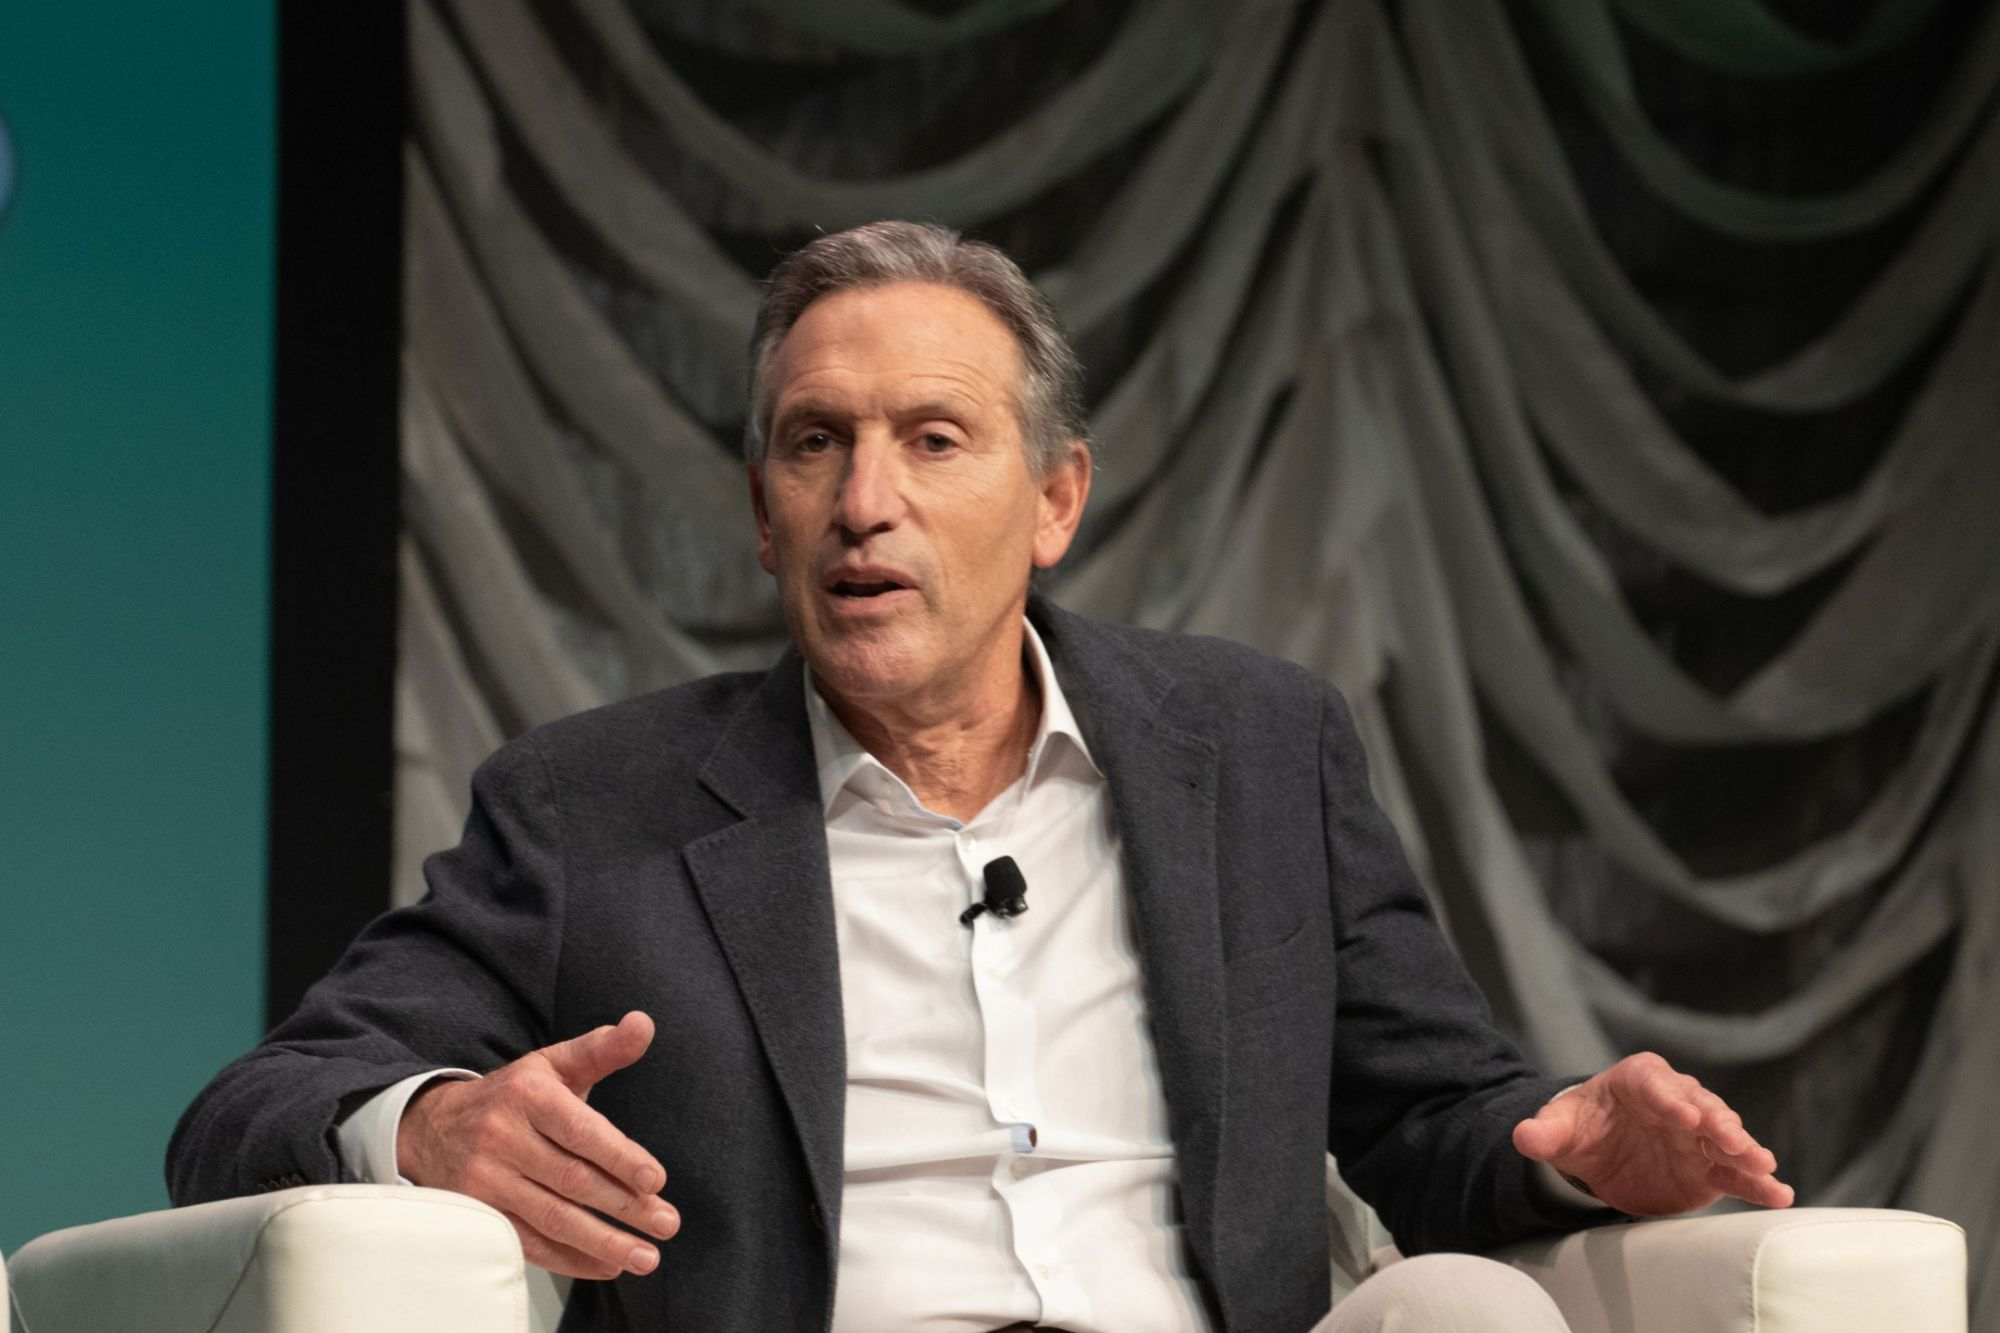 Howard Schultz Calls This Business Book Author His 'Mentor'